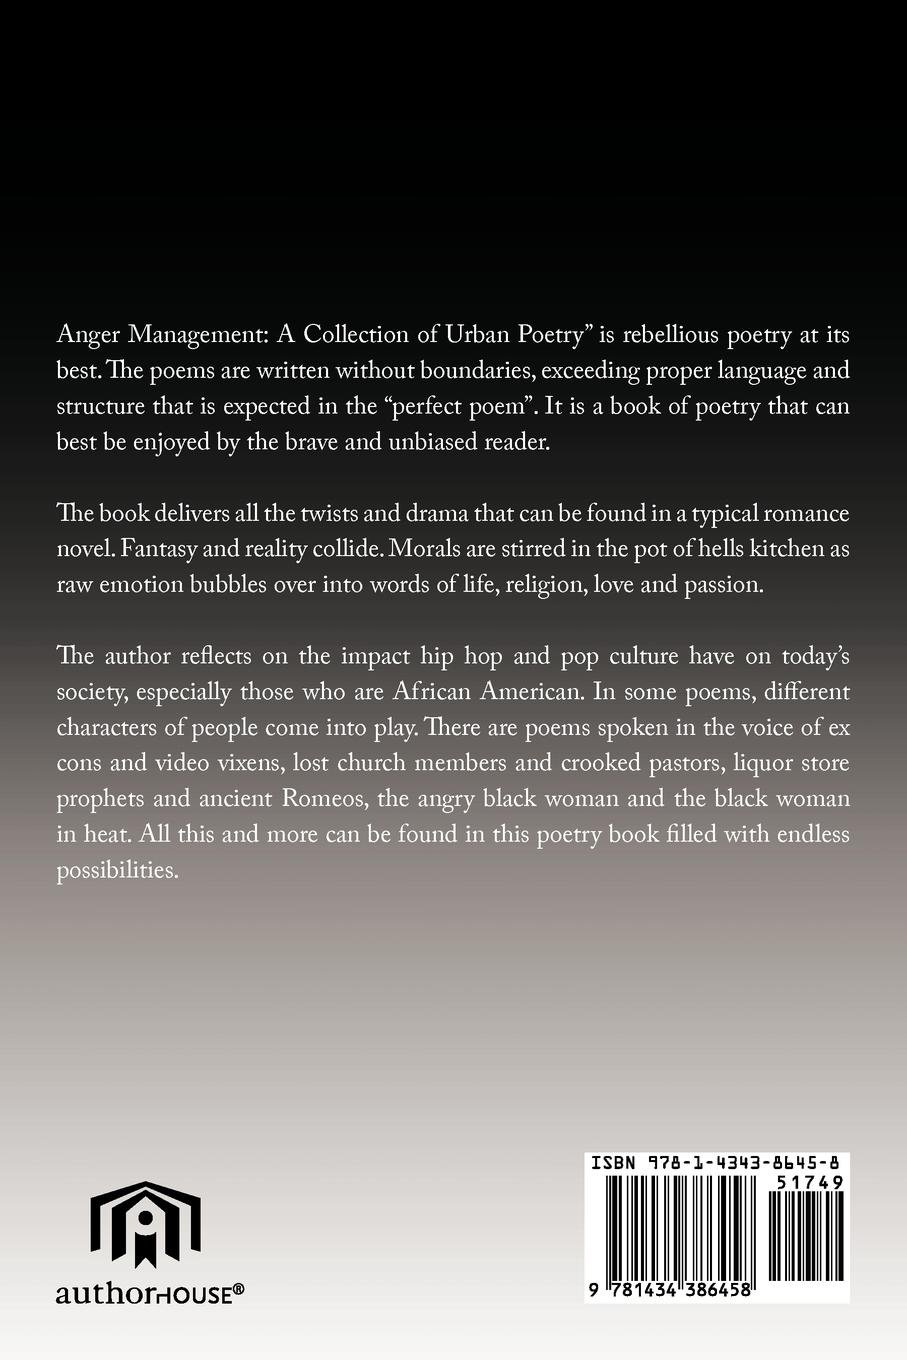 Anger Management: A Collection Of Urban Poetry